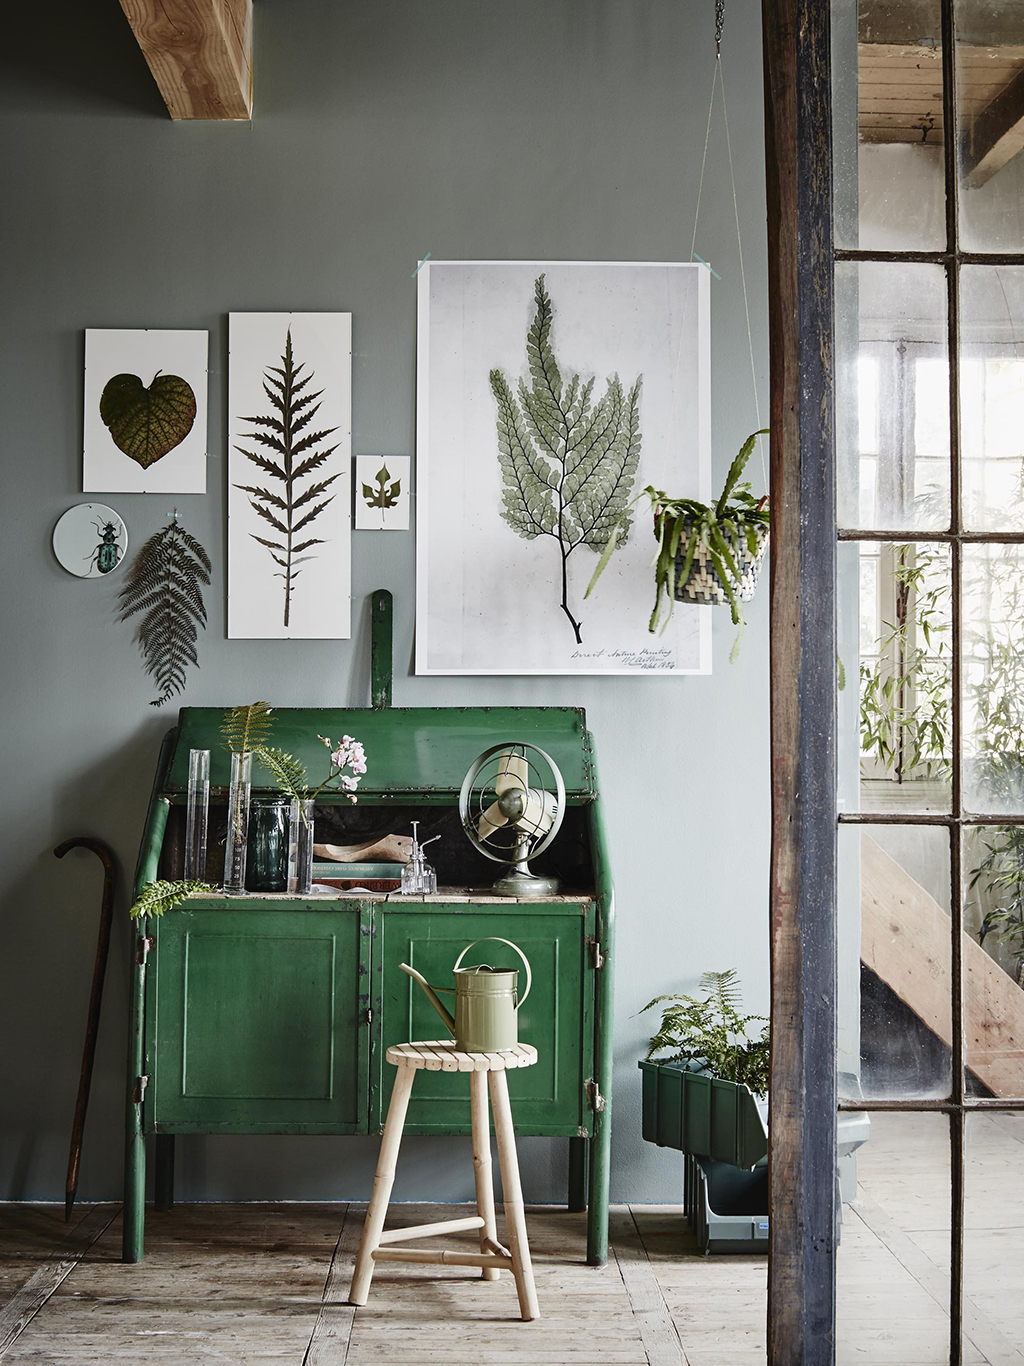 This emerald desk coupled with the delicate botanische prints above make for a charming little workspace.